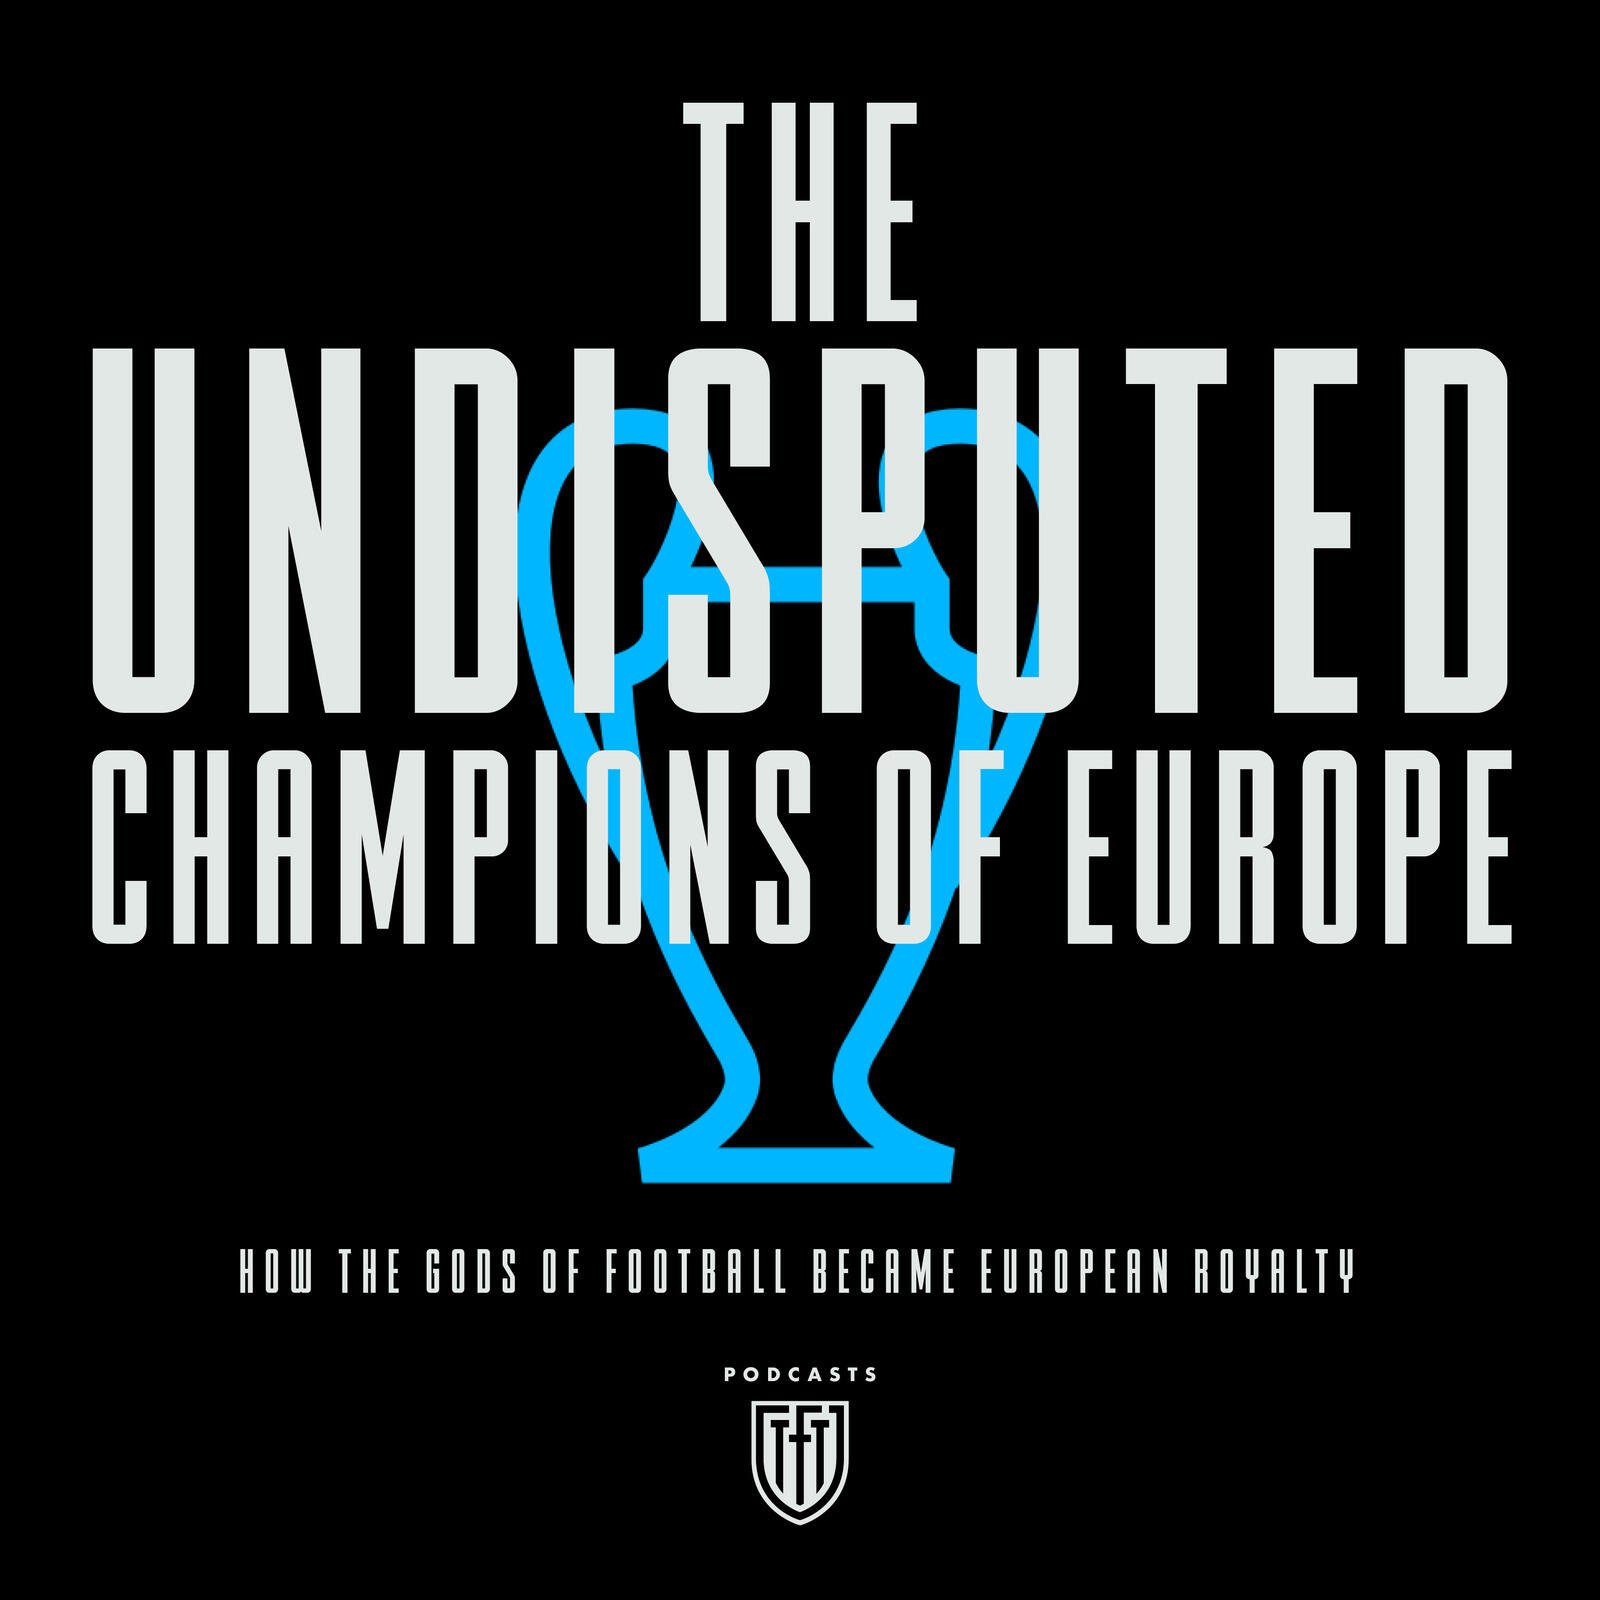 The undisputed champions of Europe: how the gods of football became European royalty